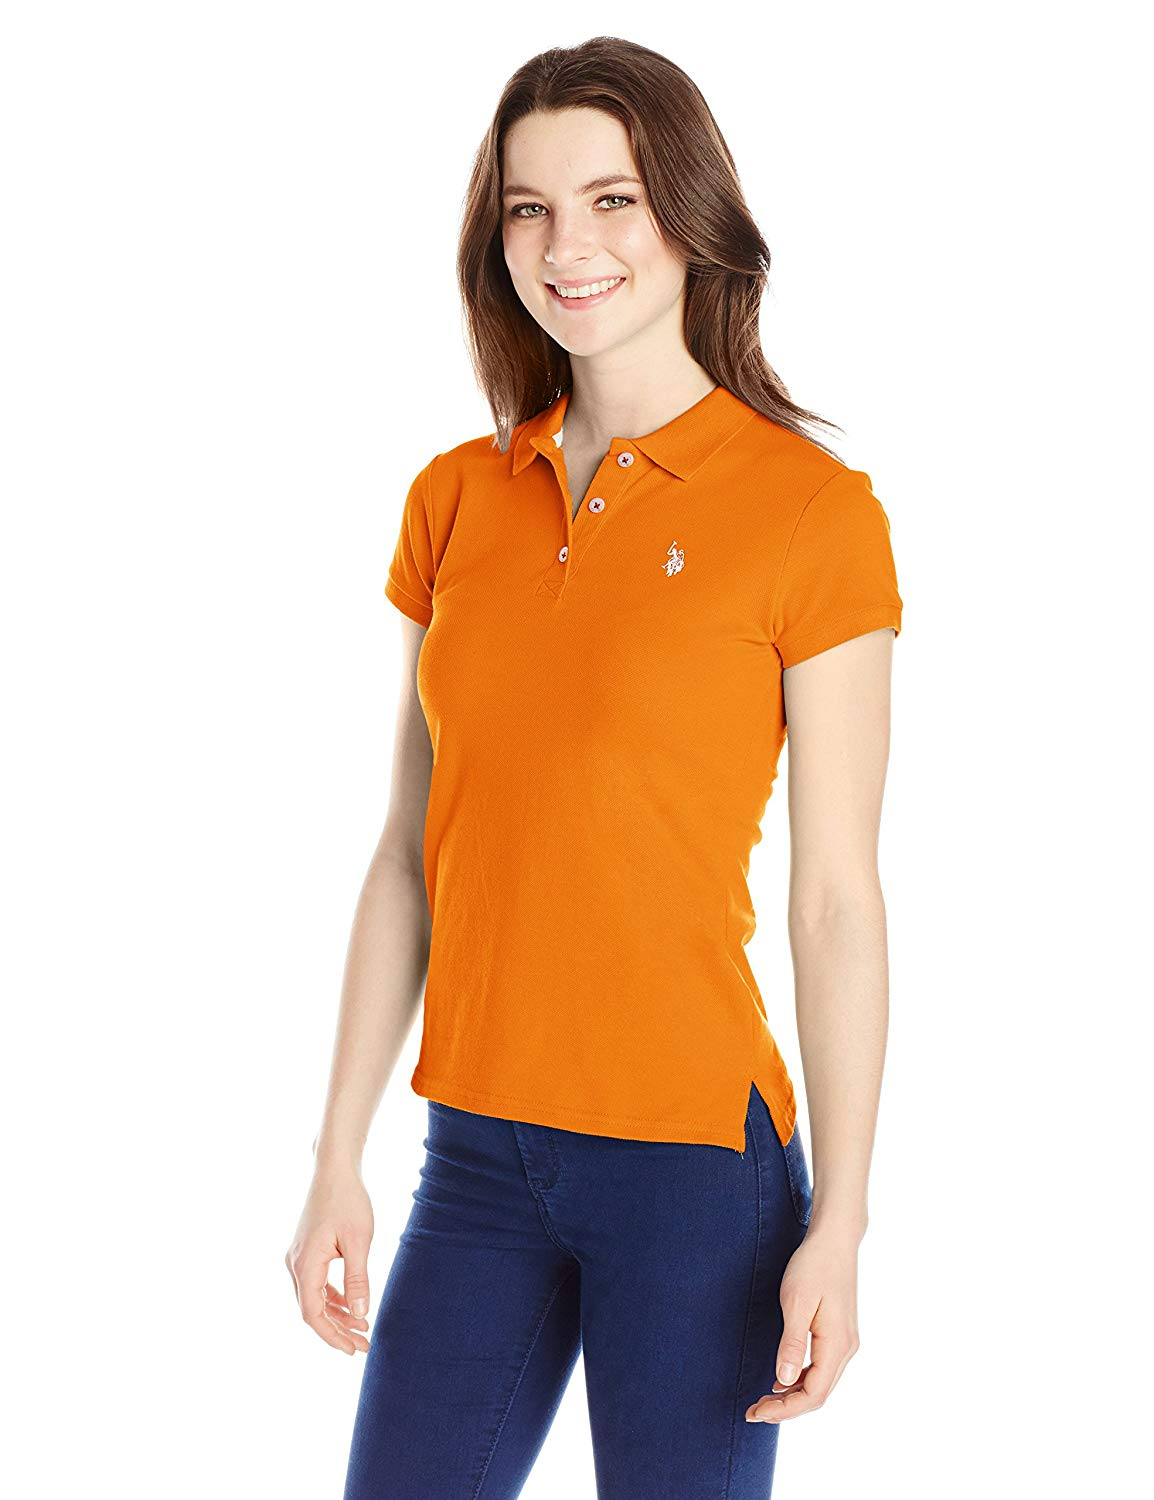 polo shirts for women u.s. polo shirt assn. juniorsu0027 short-sleeve polo shirt at amazon womenu0027s  clothing store: OPZTZNZ